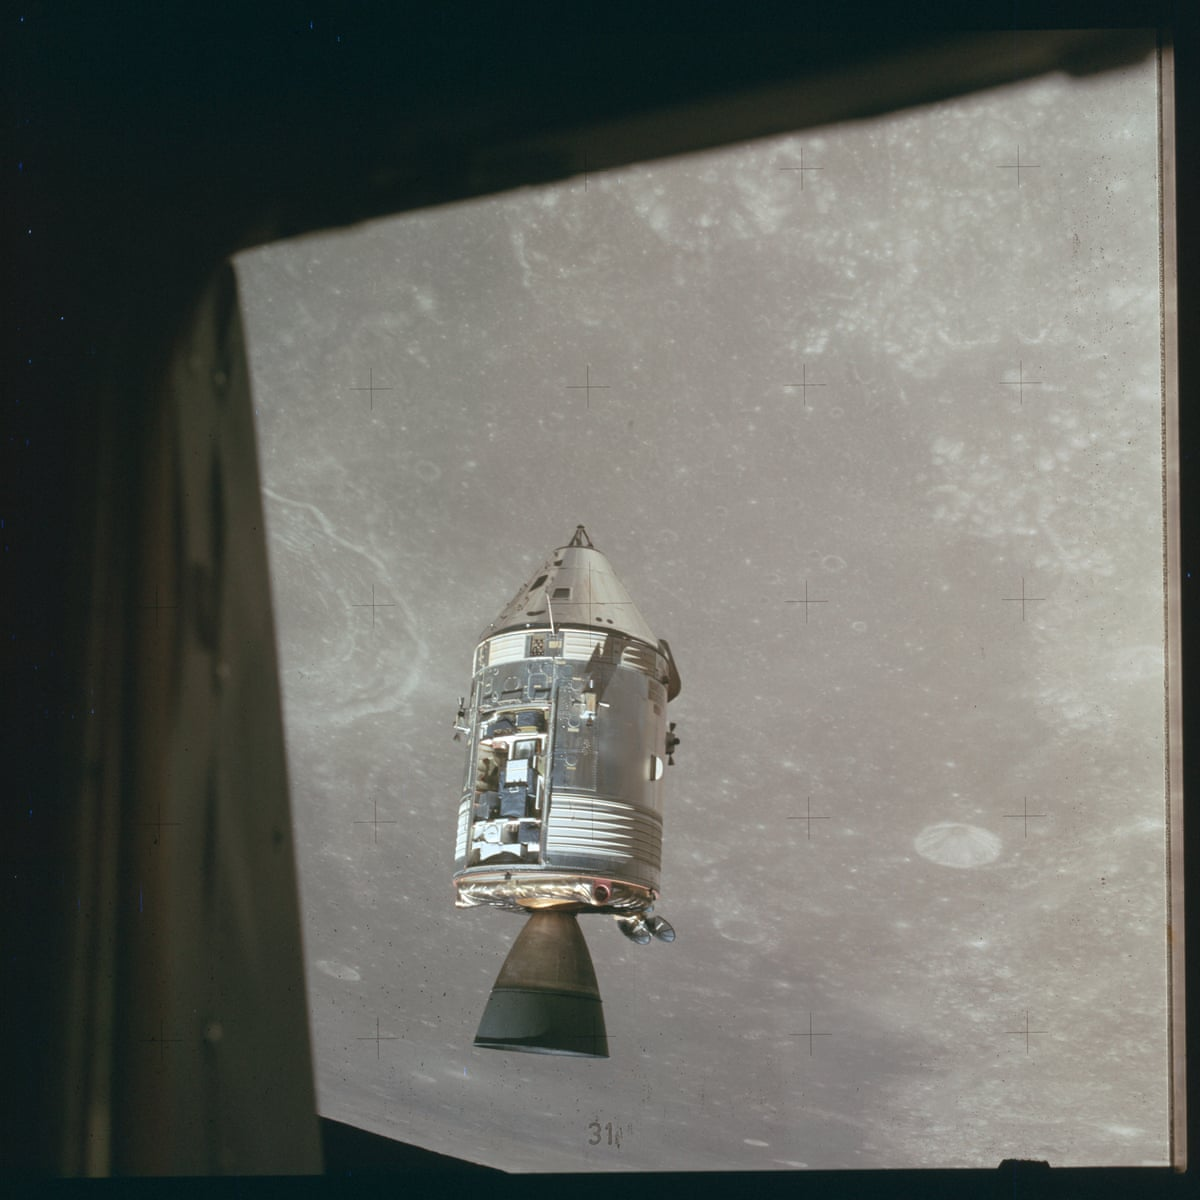 nasa apollo program pictures - photo #37